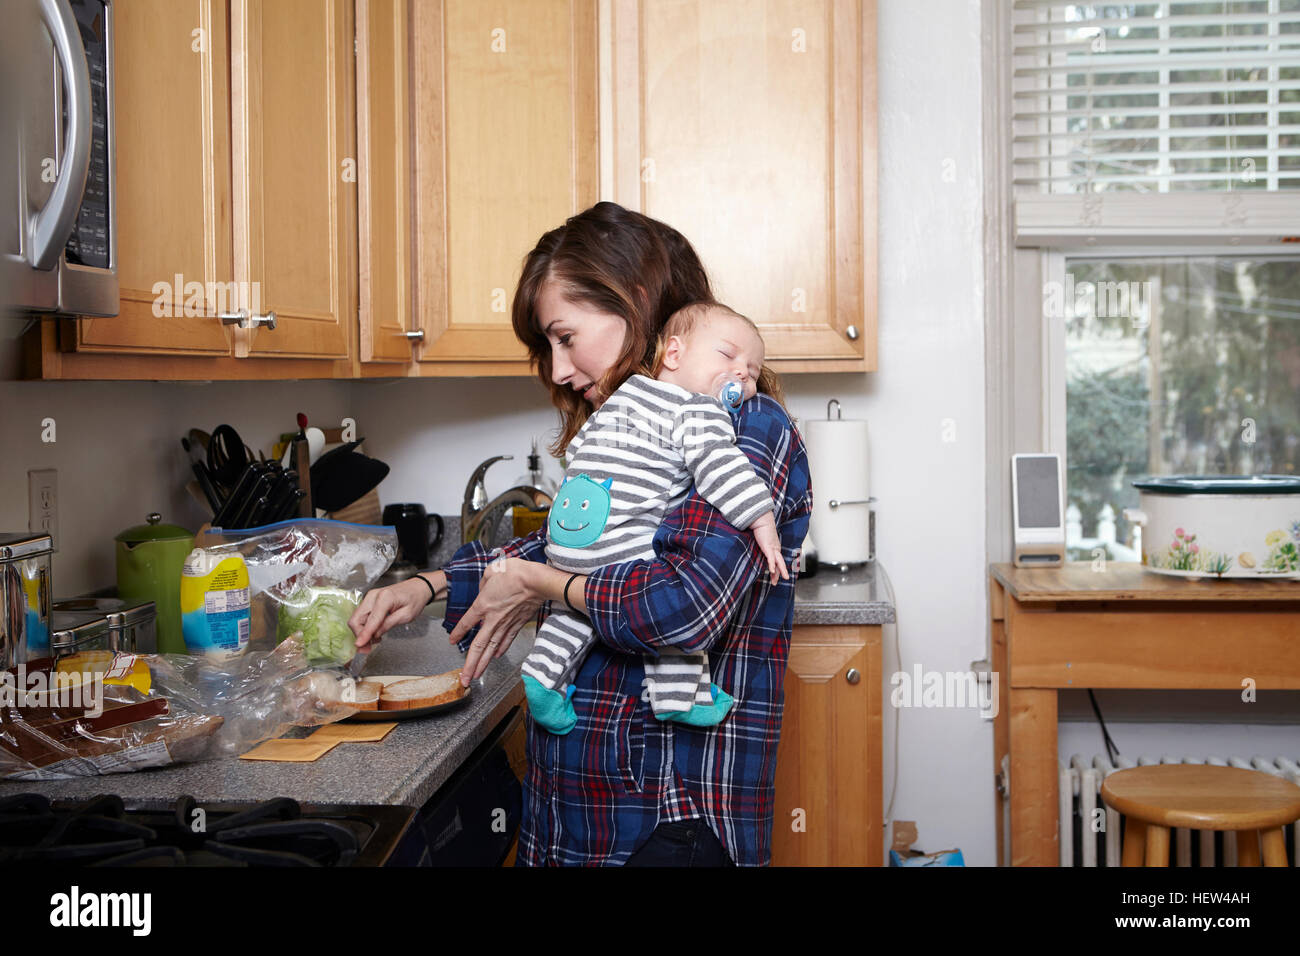 Mother holding sleeping baby boy et la préparation de sandwich Photo Stock